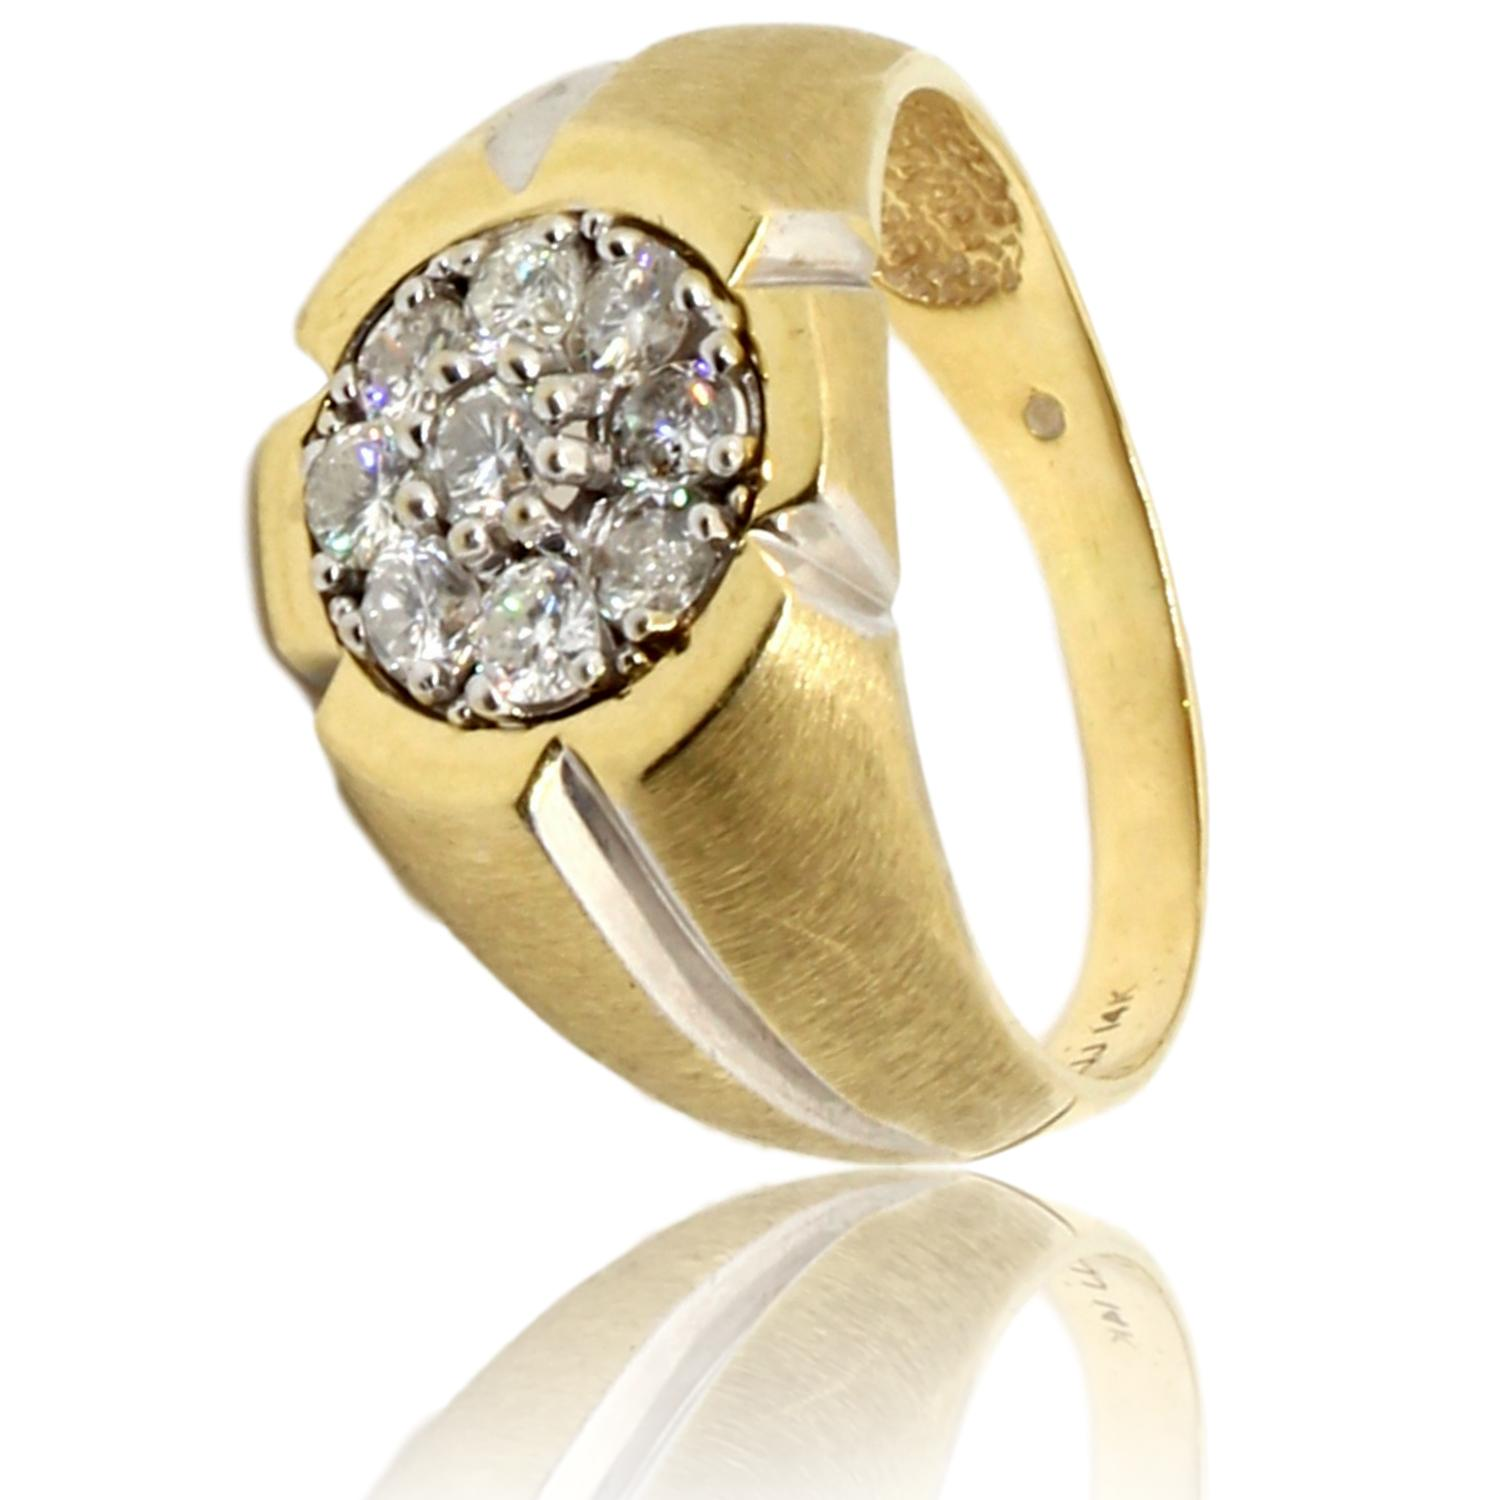 14K-Gold-1.5ctw-Mens-Diamond-Ring_82900A.jpg